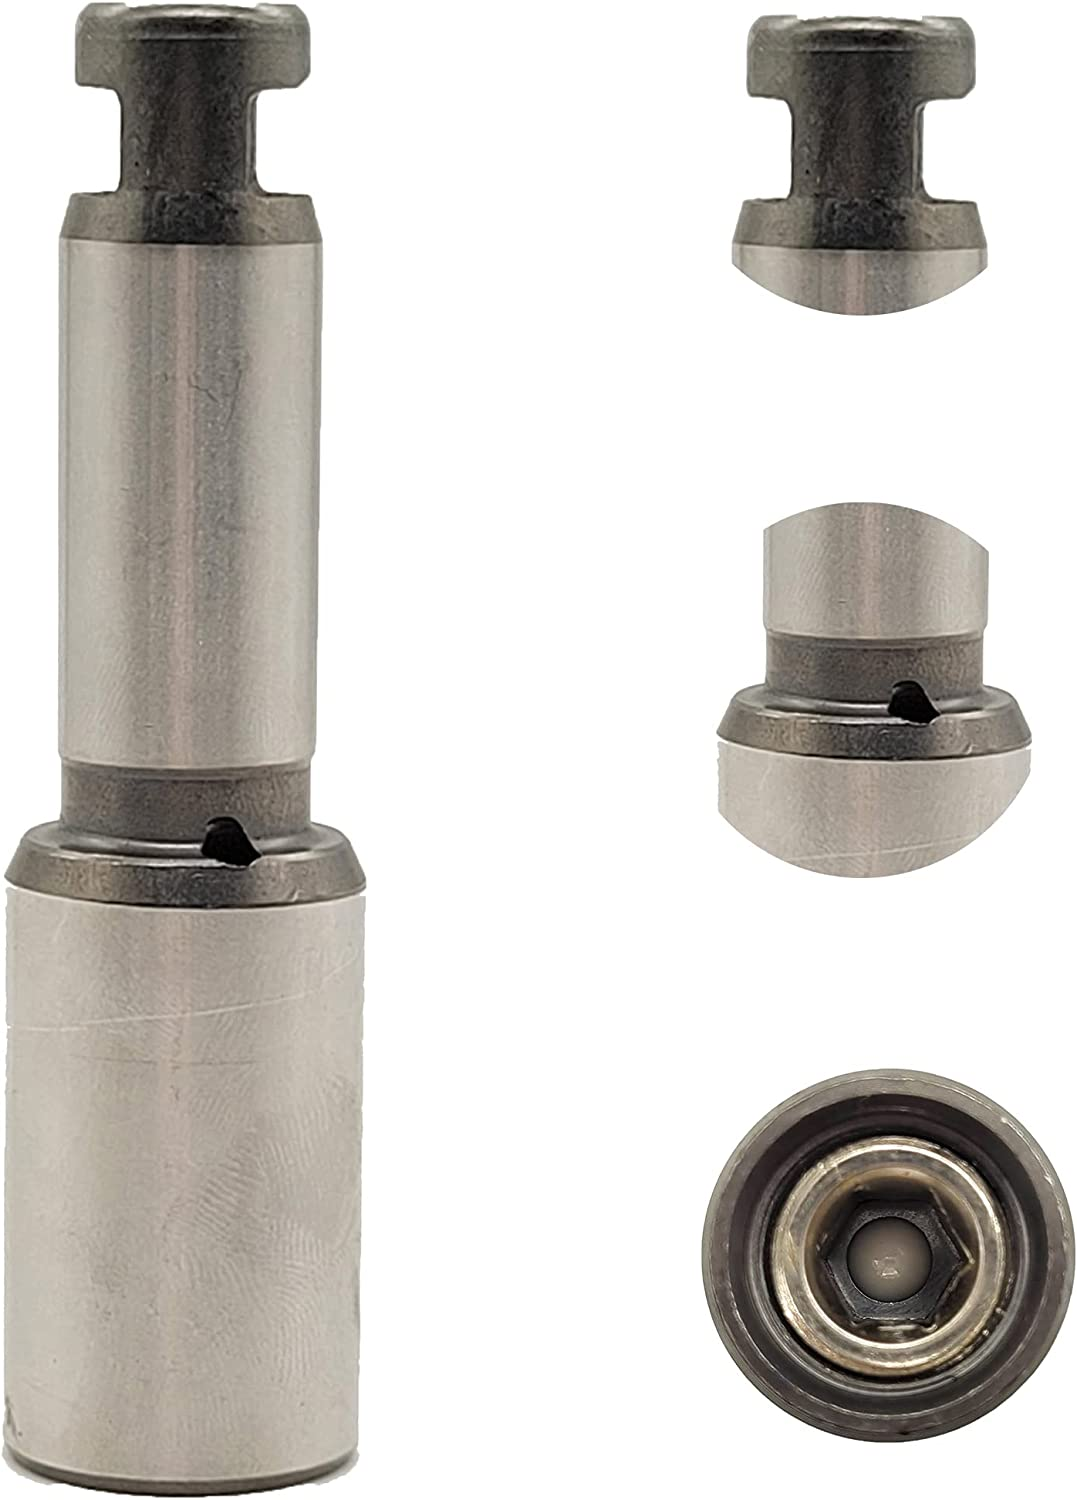 Thomegoods Piston Rod 704-551 for Ranking TOP9 Titan Airle Sale SALE% OFF 640 440 540 Impact